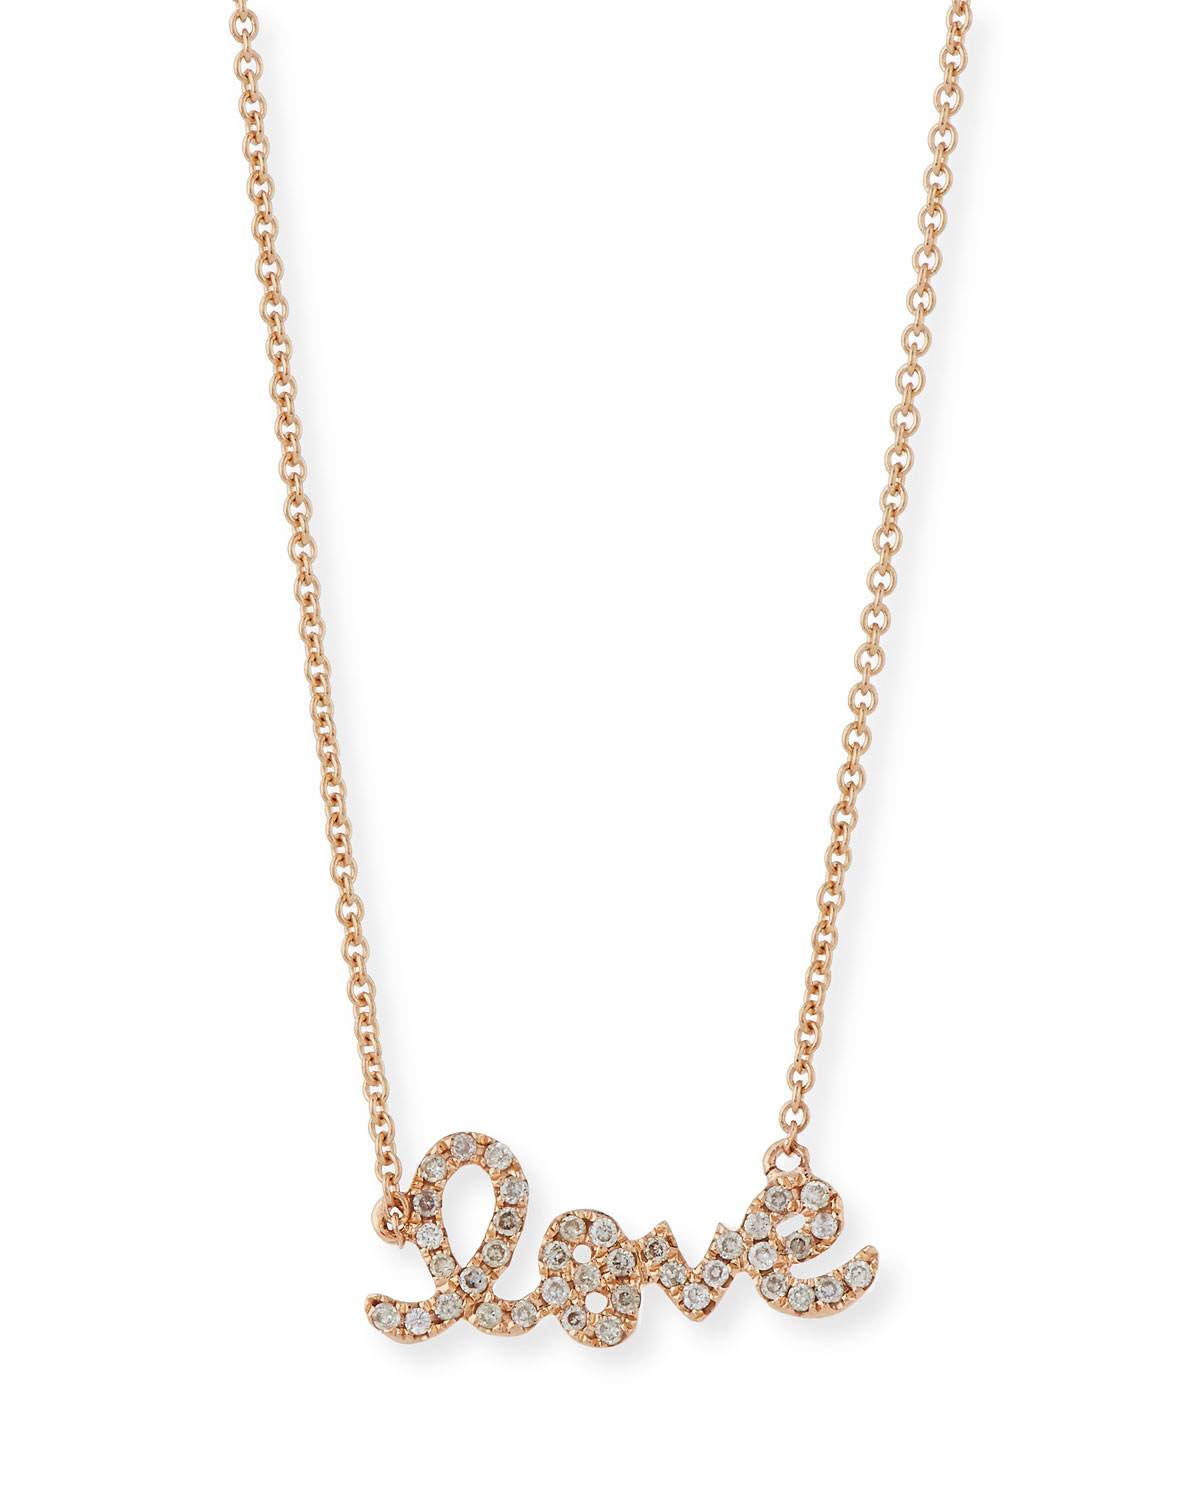 Rose Gold Diamond Love Necklace, Small - Sydney Evan